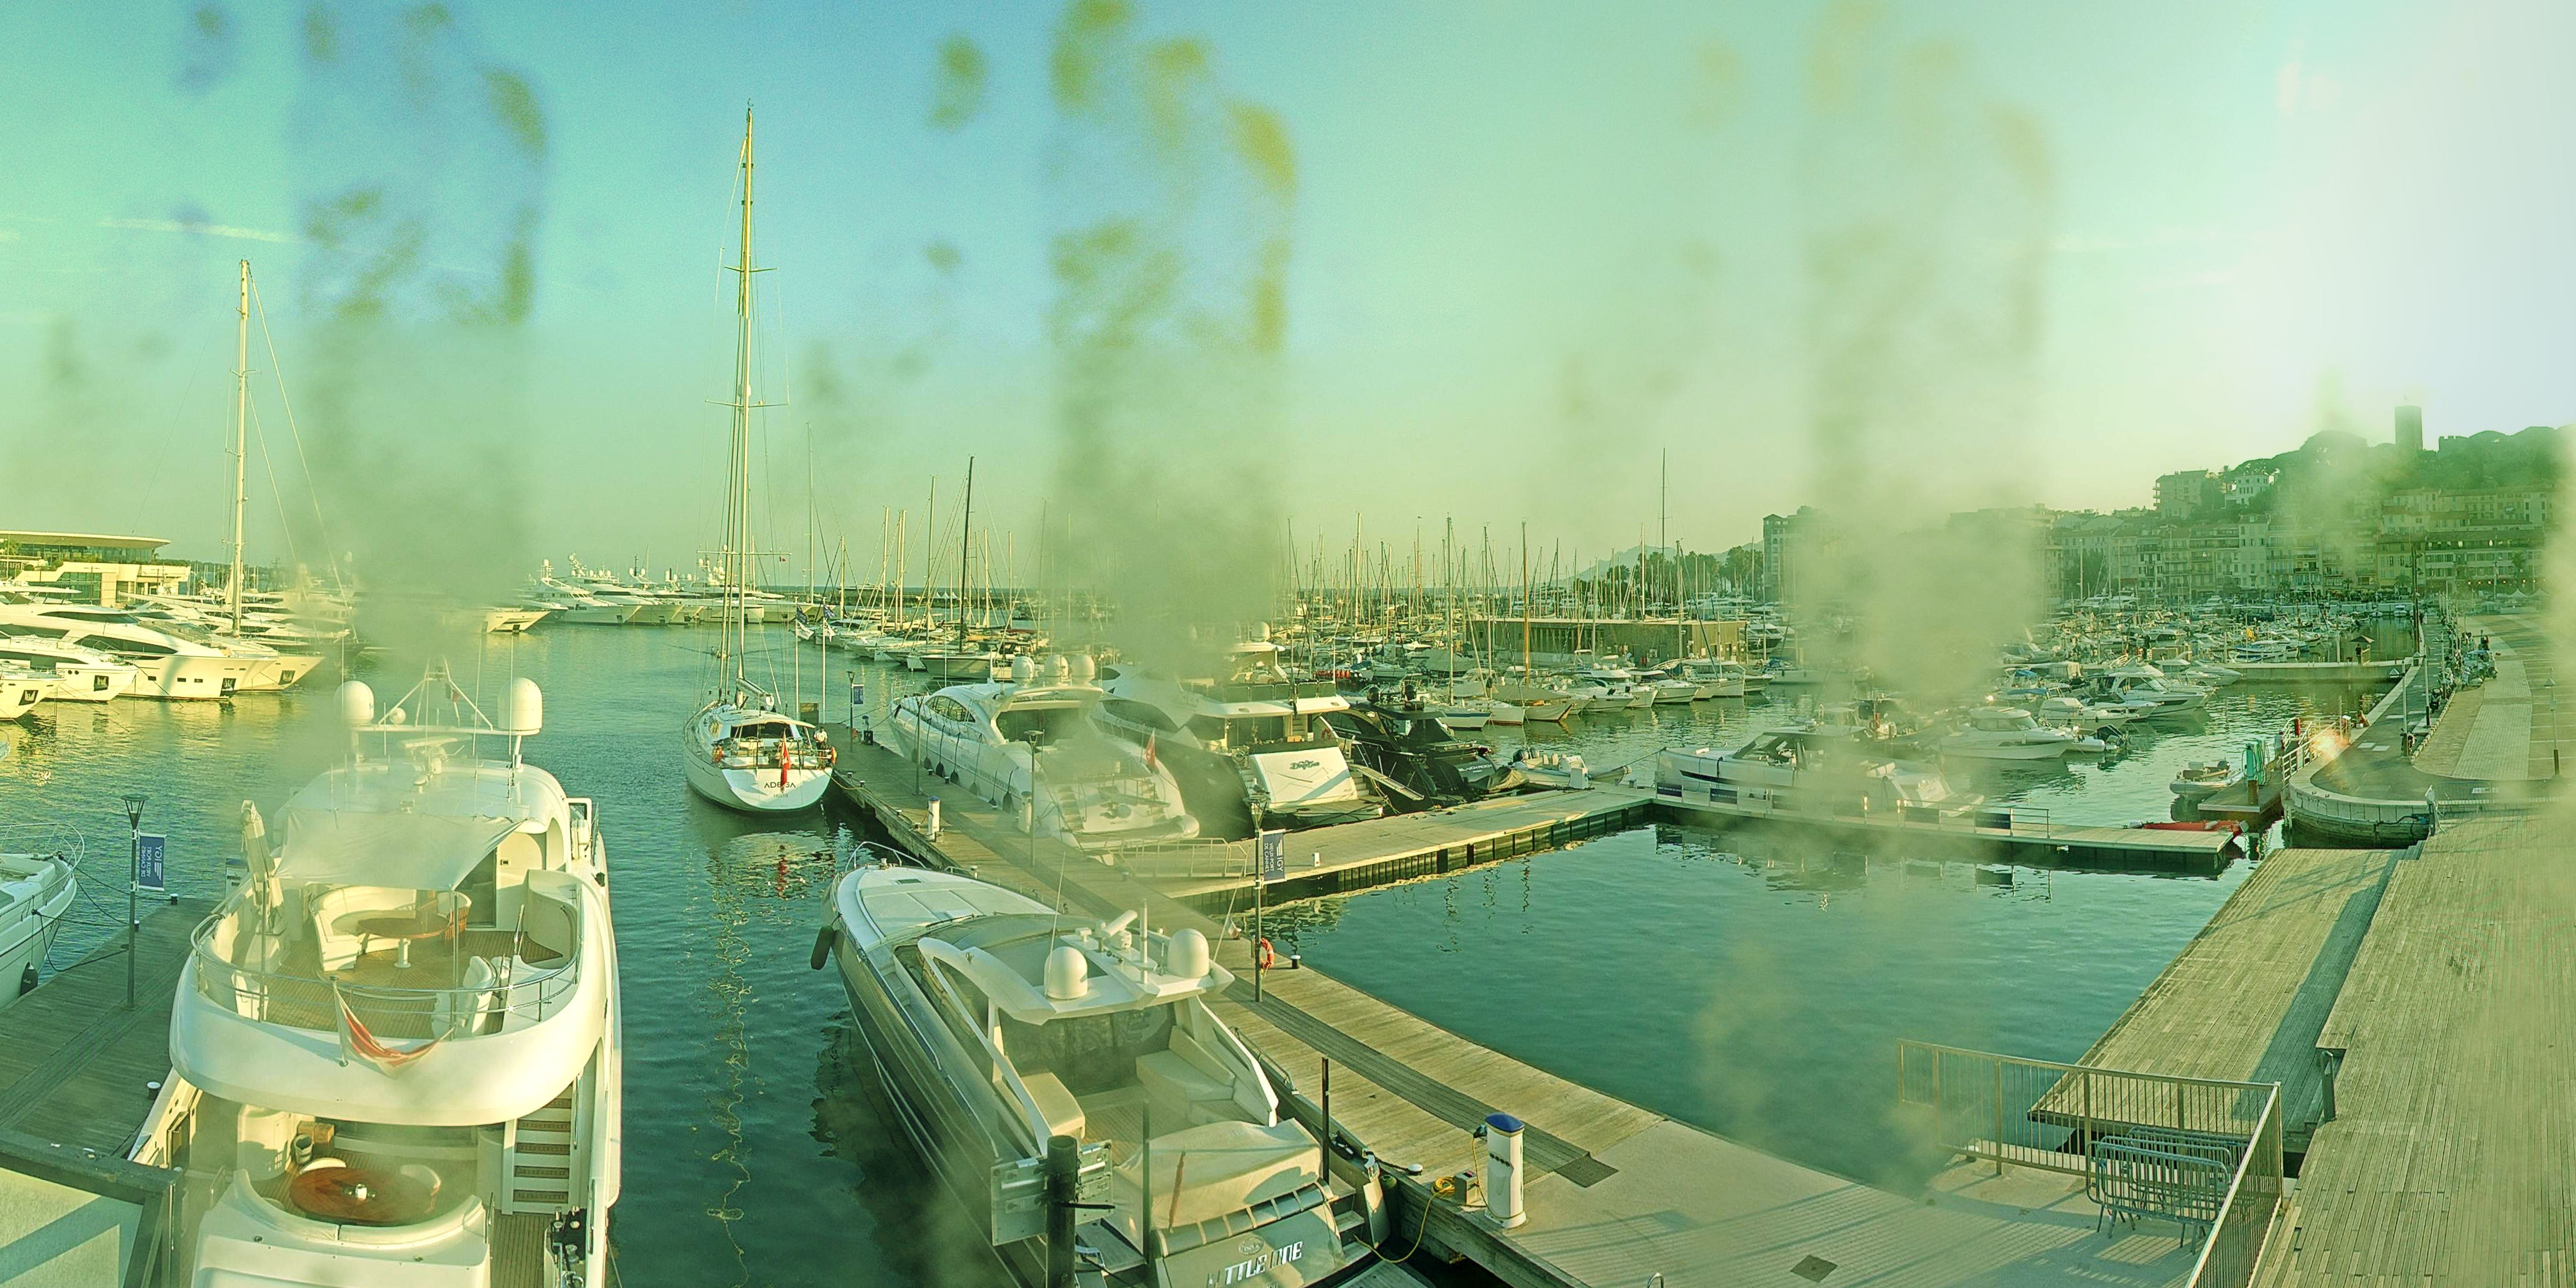 Cannes Wed. 21:35